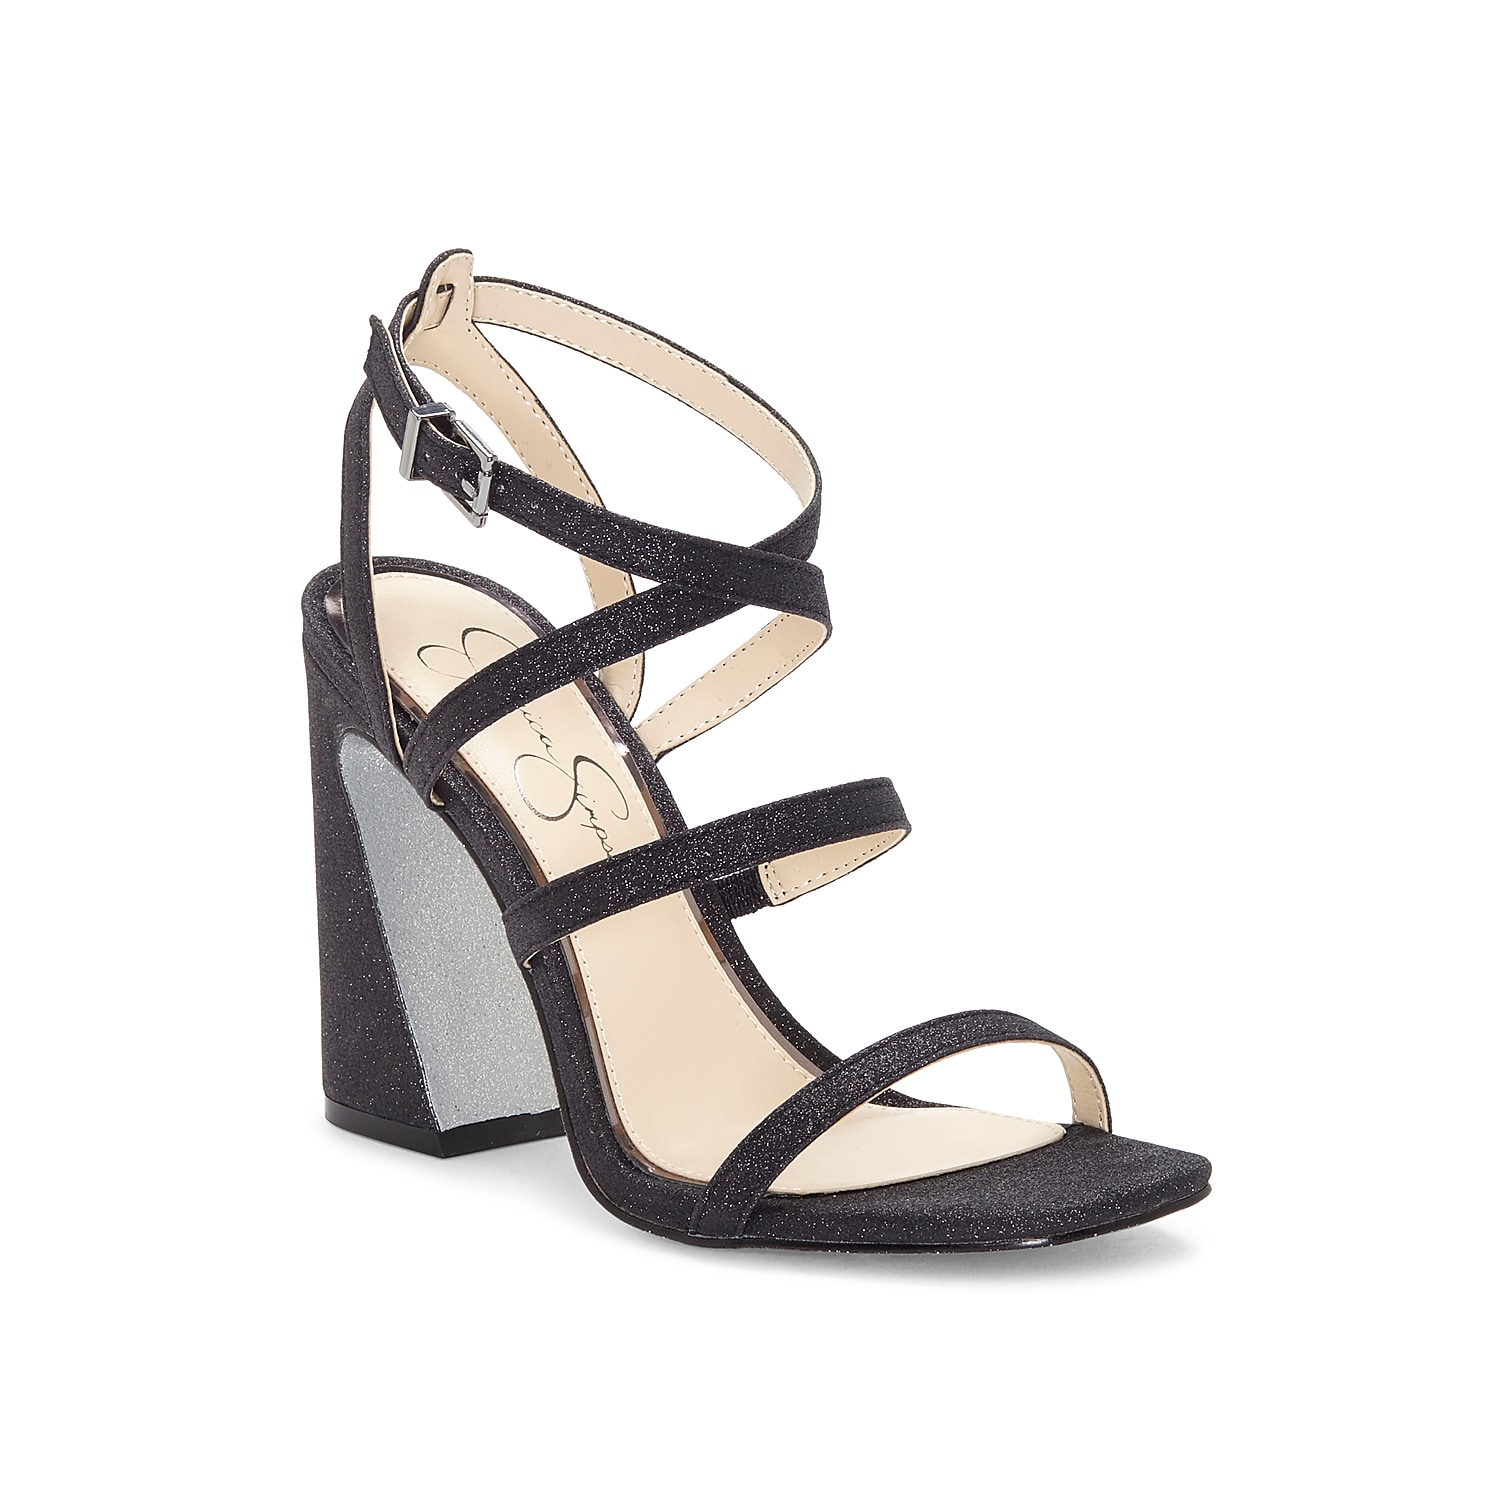 Give your ensemble the right amount of style with the Raymie sandal from Jessica Simpson. This silhouette is fashioned with a glitter upper and a flared block heel for extra trend points!